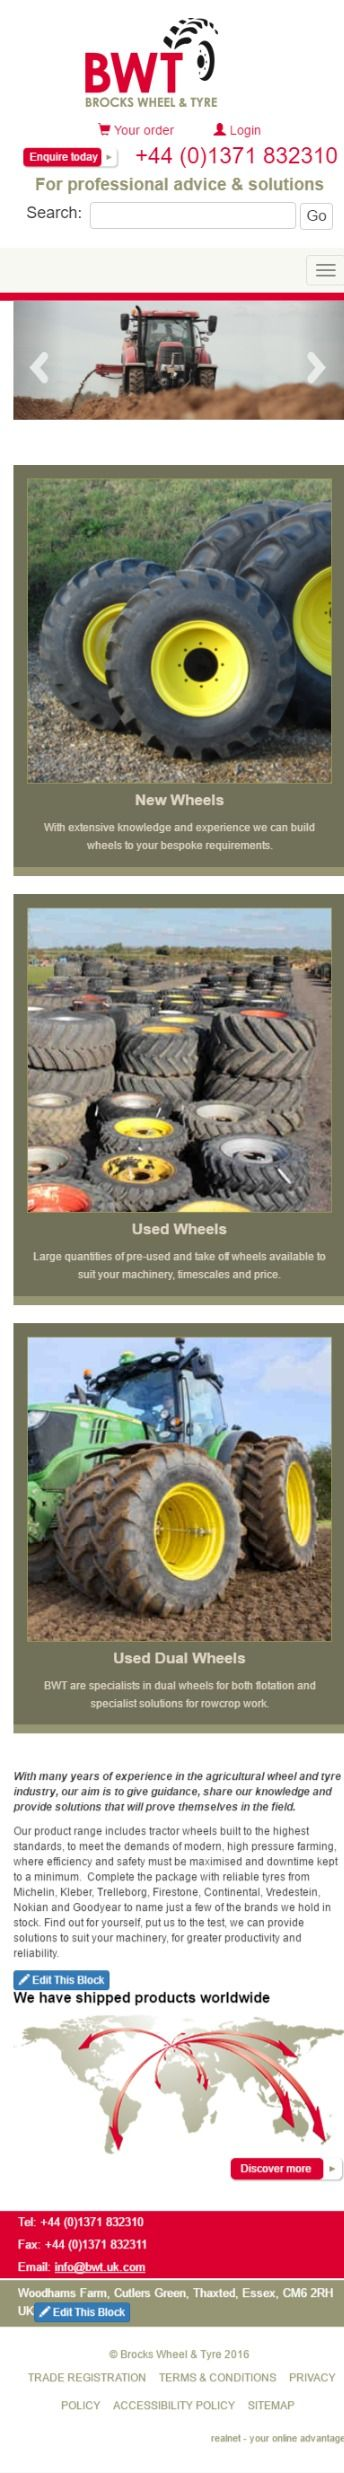 Brock's Wheel and Tyre specialise in wheels and tyres for the agricultural sector -  mobile display